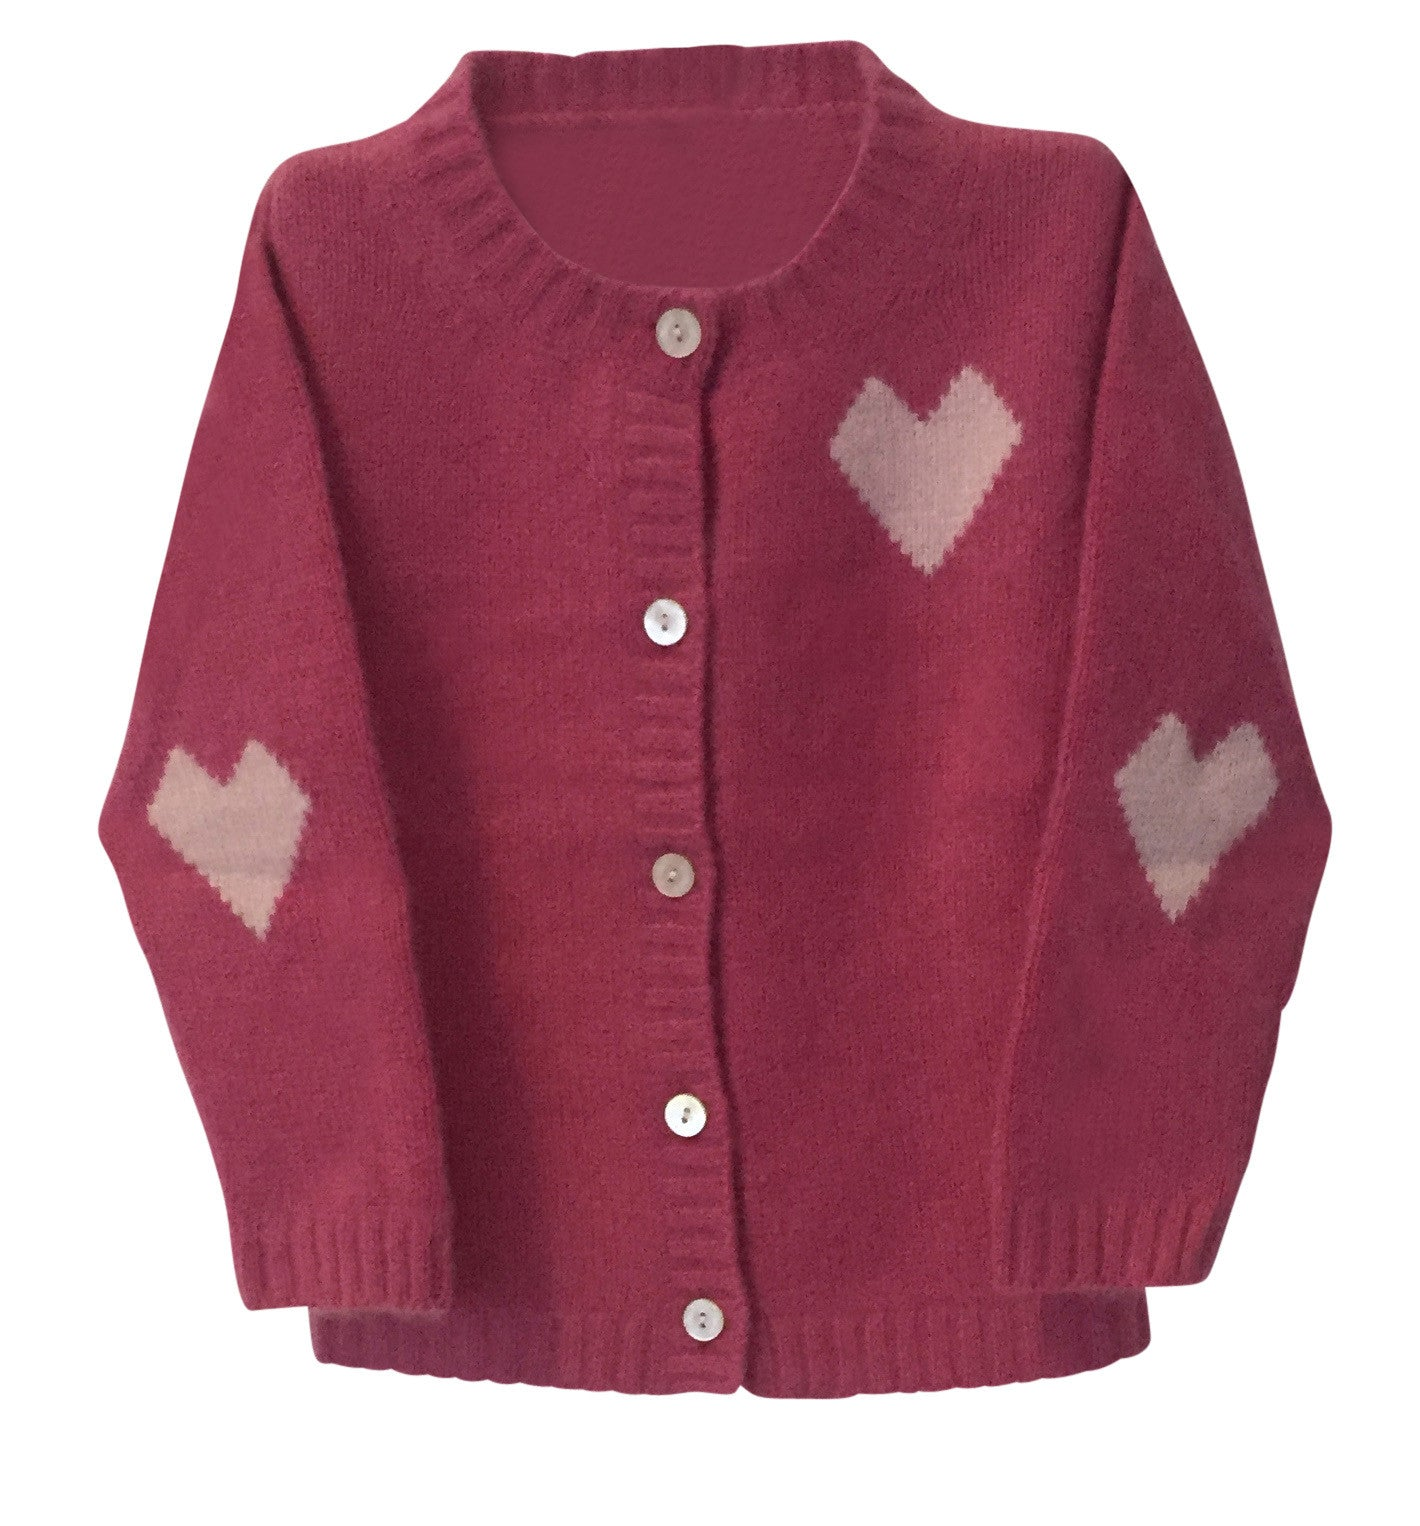 Pure Cashmere Cardigan Intarsia Hearts, 100% eco-friendly - MINIMAINS